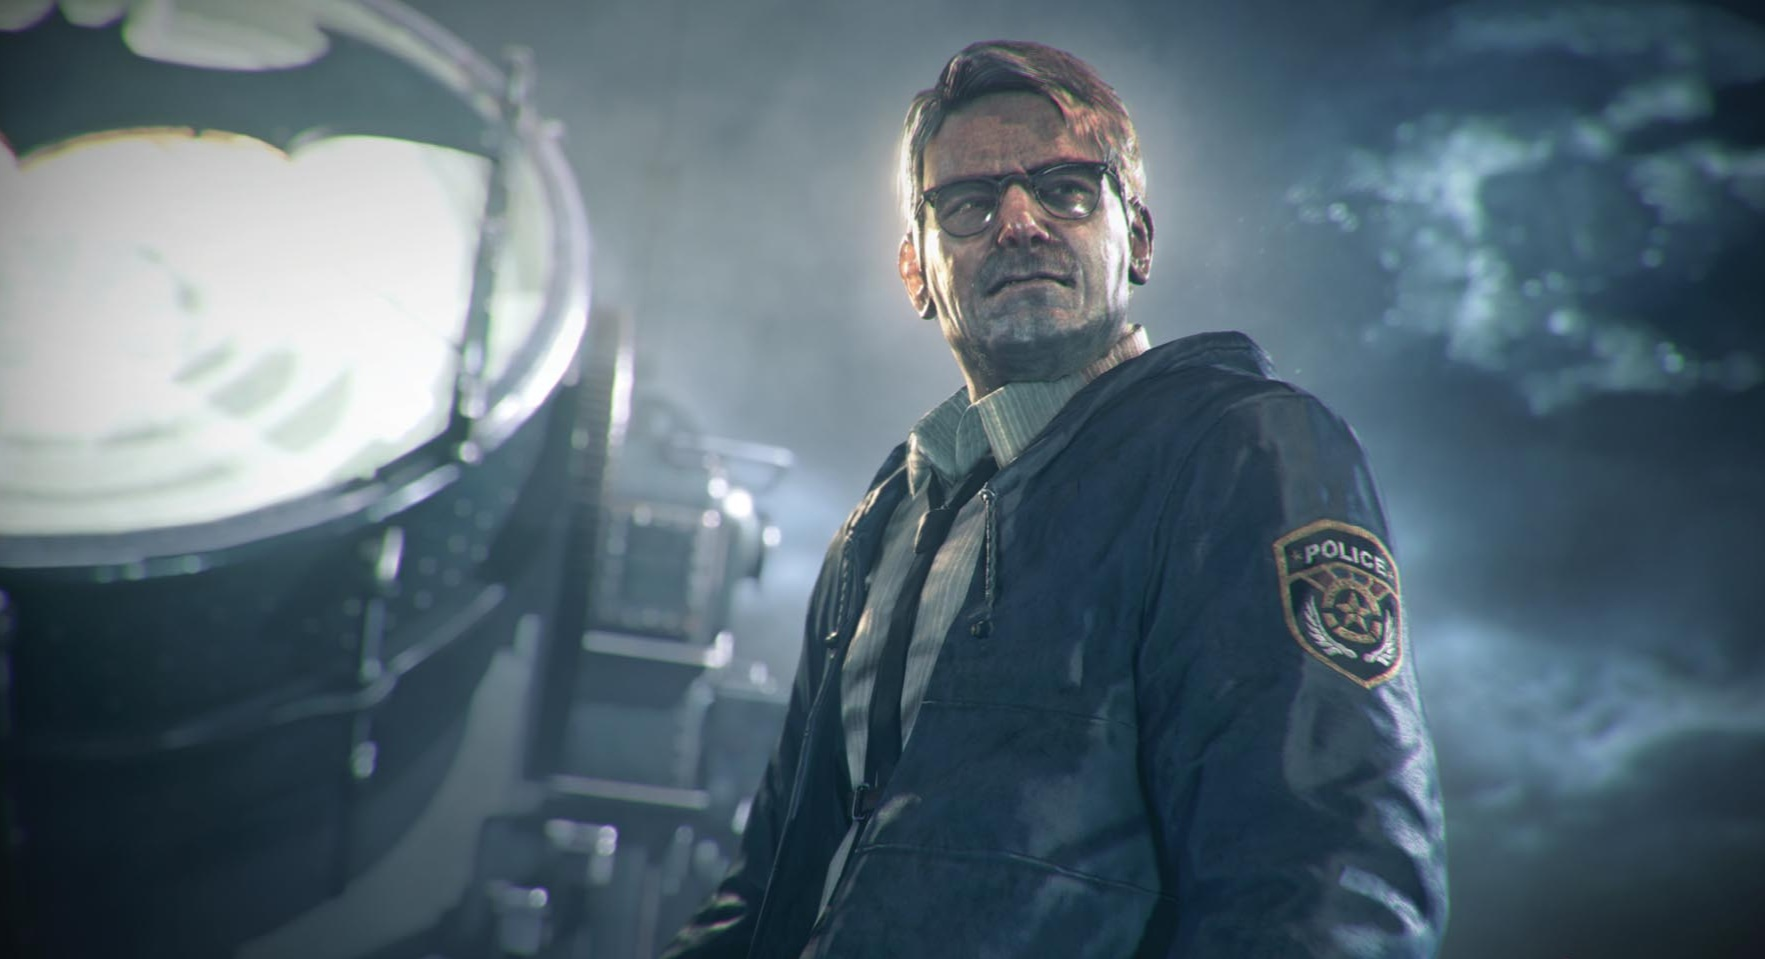 Batman: Arkham Knight voice cast includes Breaking Bad and Twilight ...